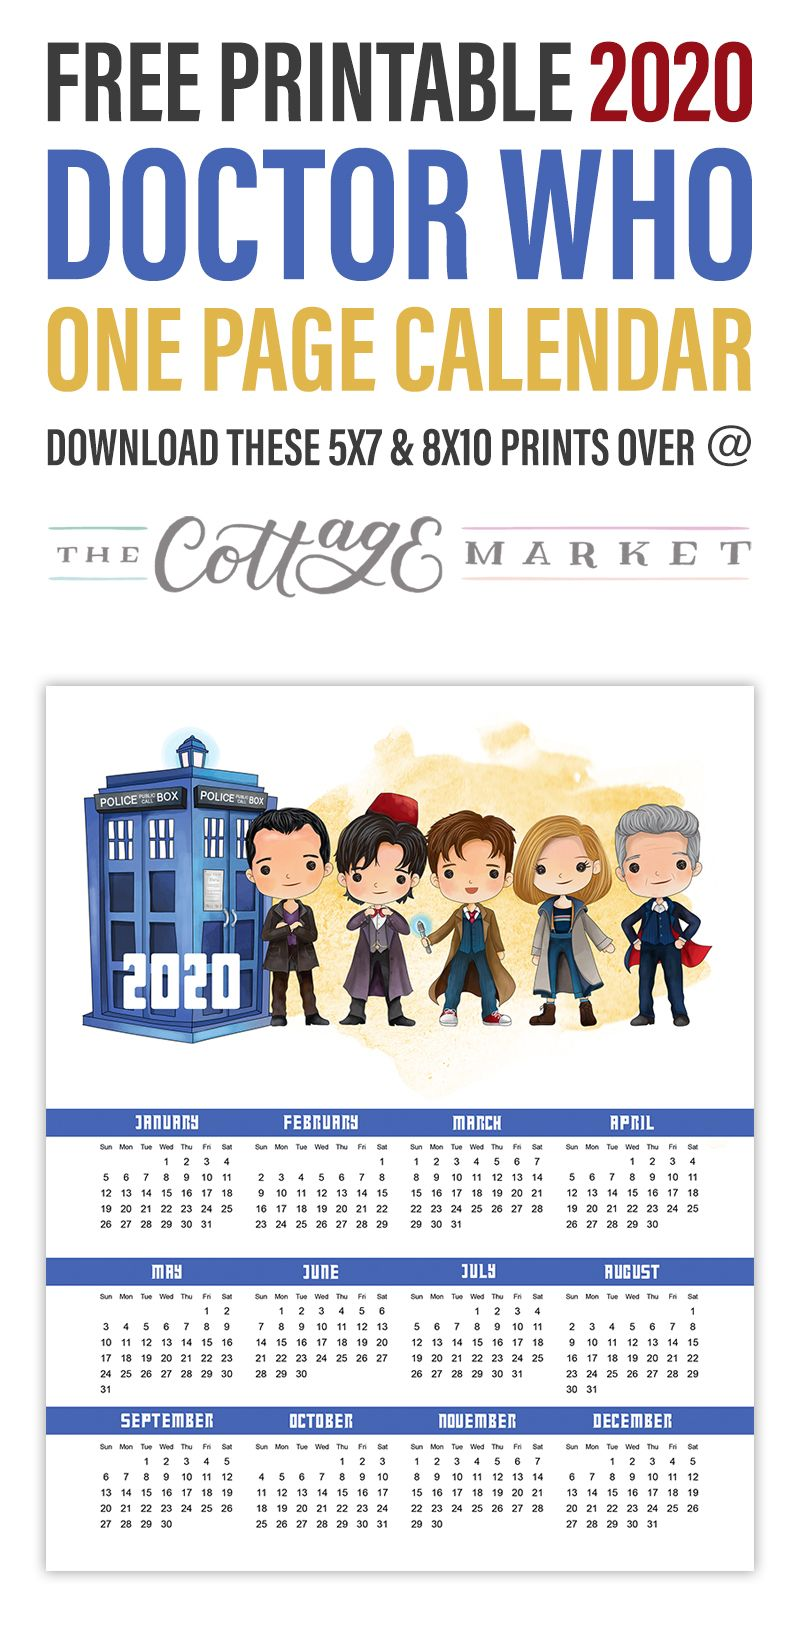 Free Printable 2020 Doctor Who One Page Calendar The Cottage Market Free Printables Doctor Who Printable Doctor Who